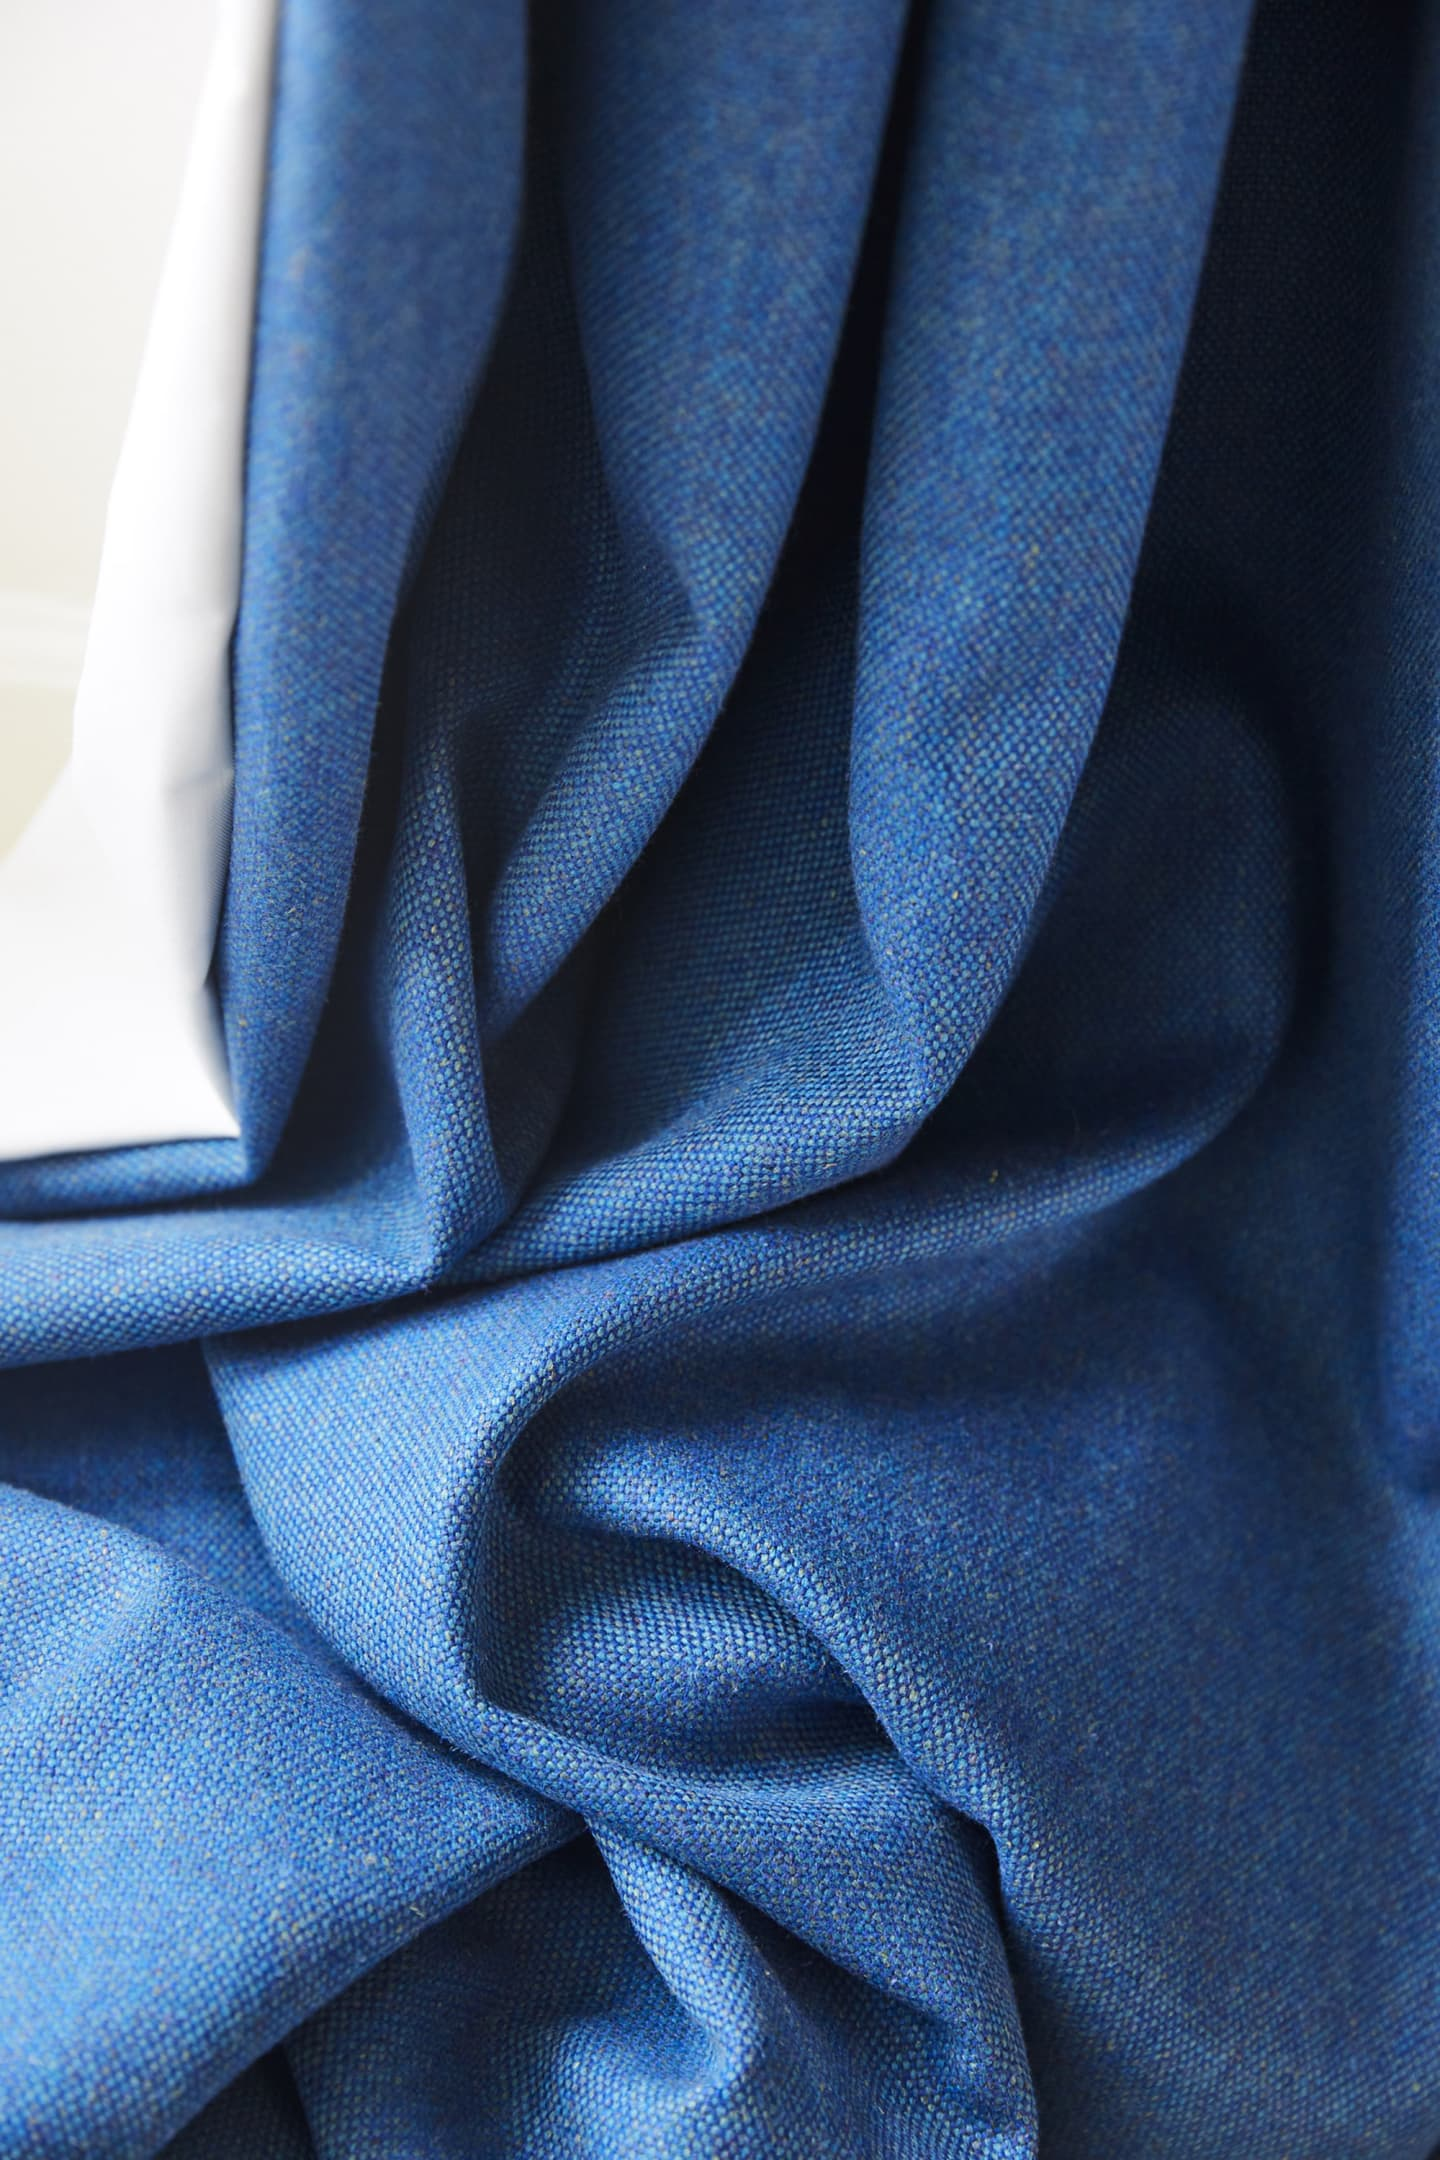 close up of creased blue curtain stitching